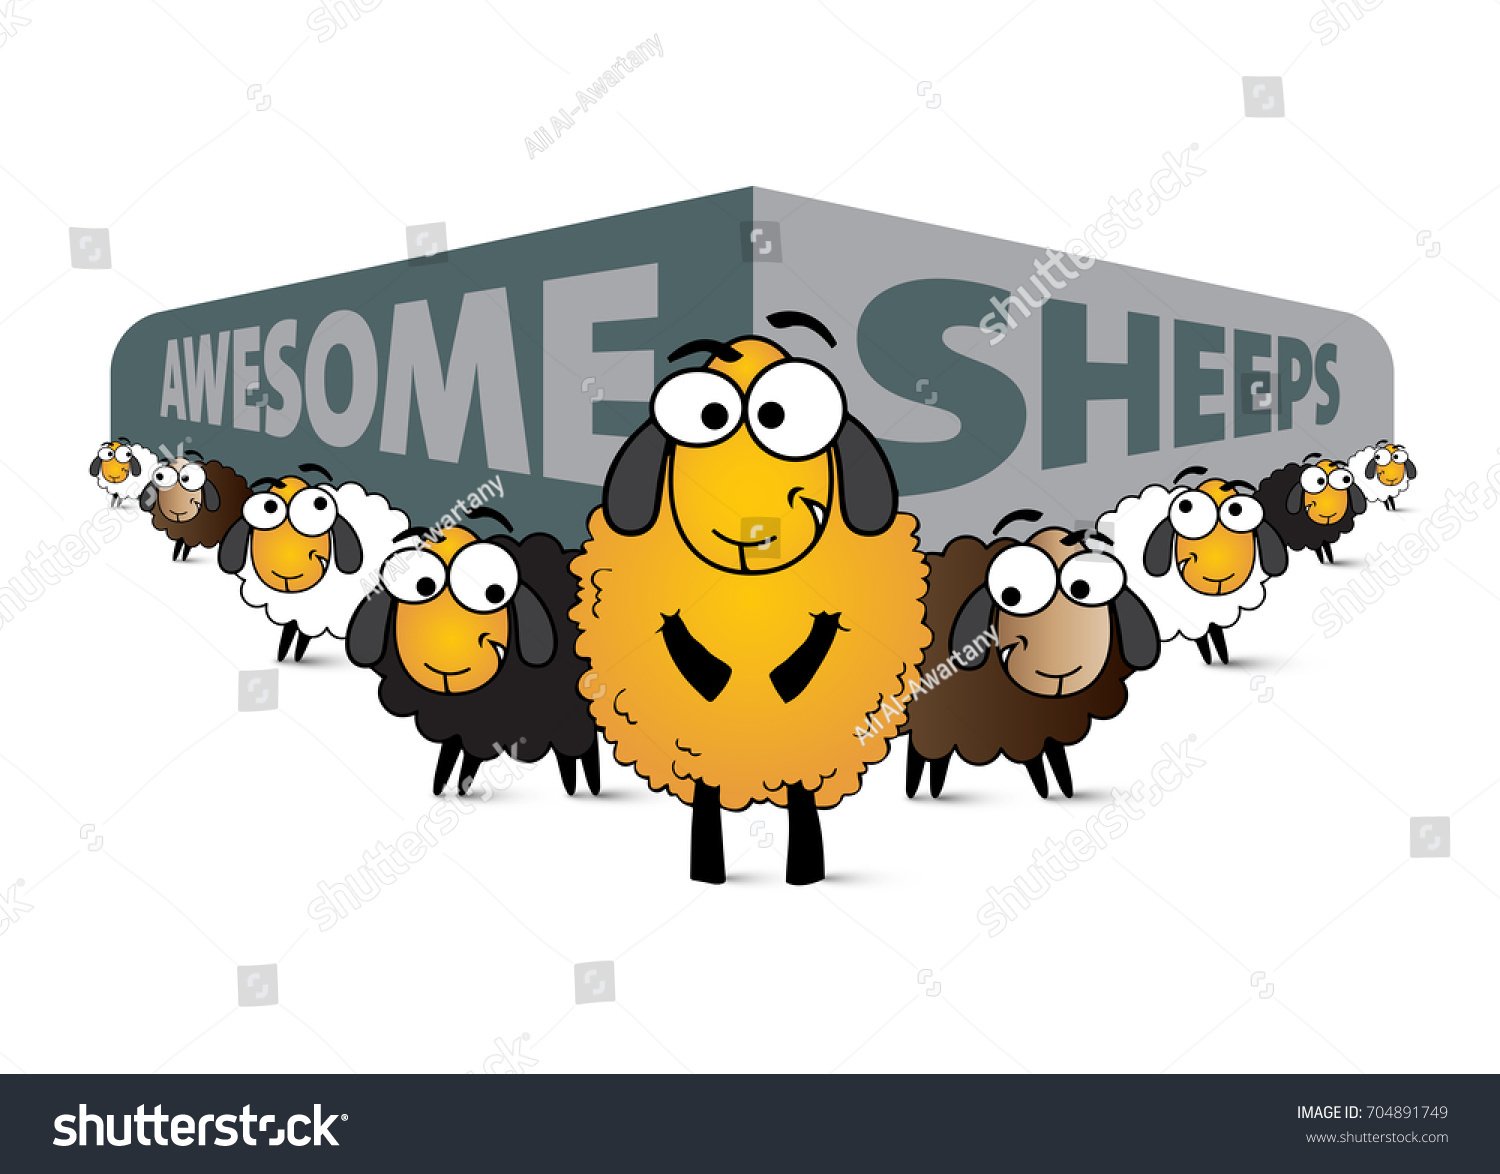 stock-vector-illustration-of-awesome-she